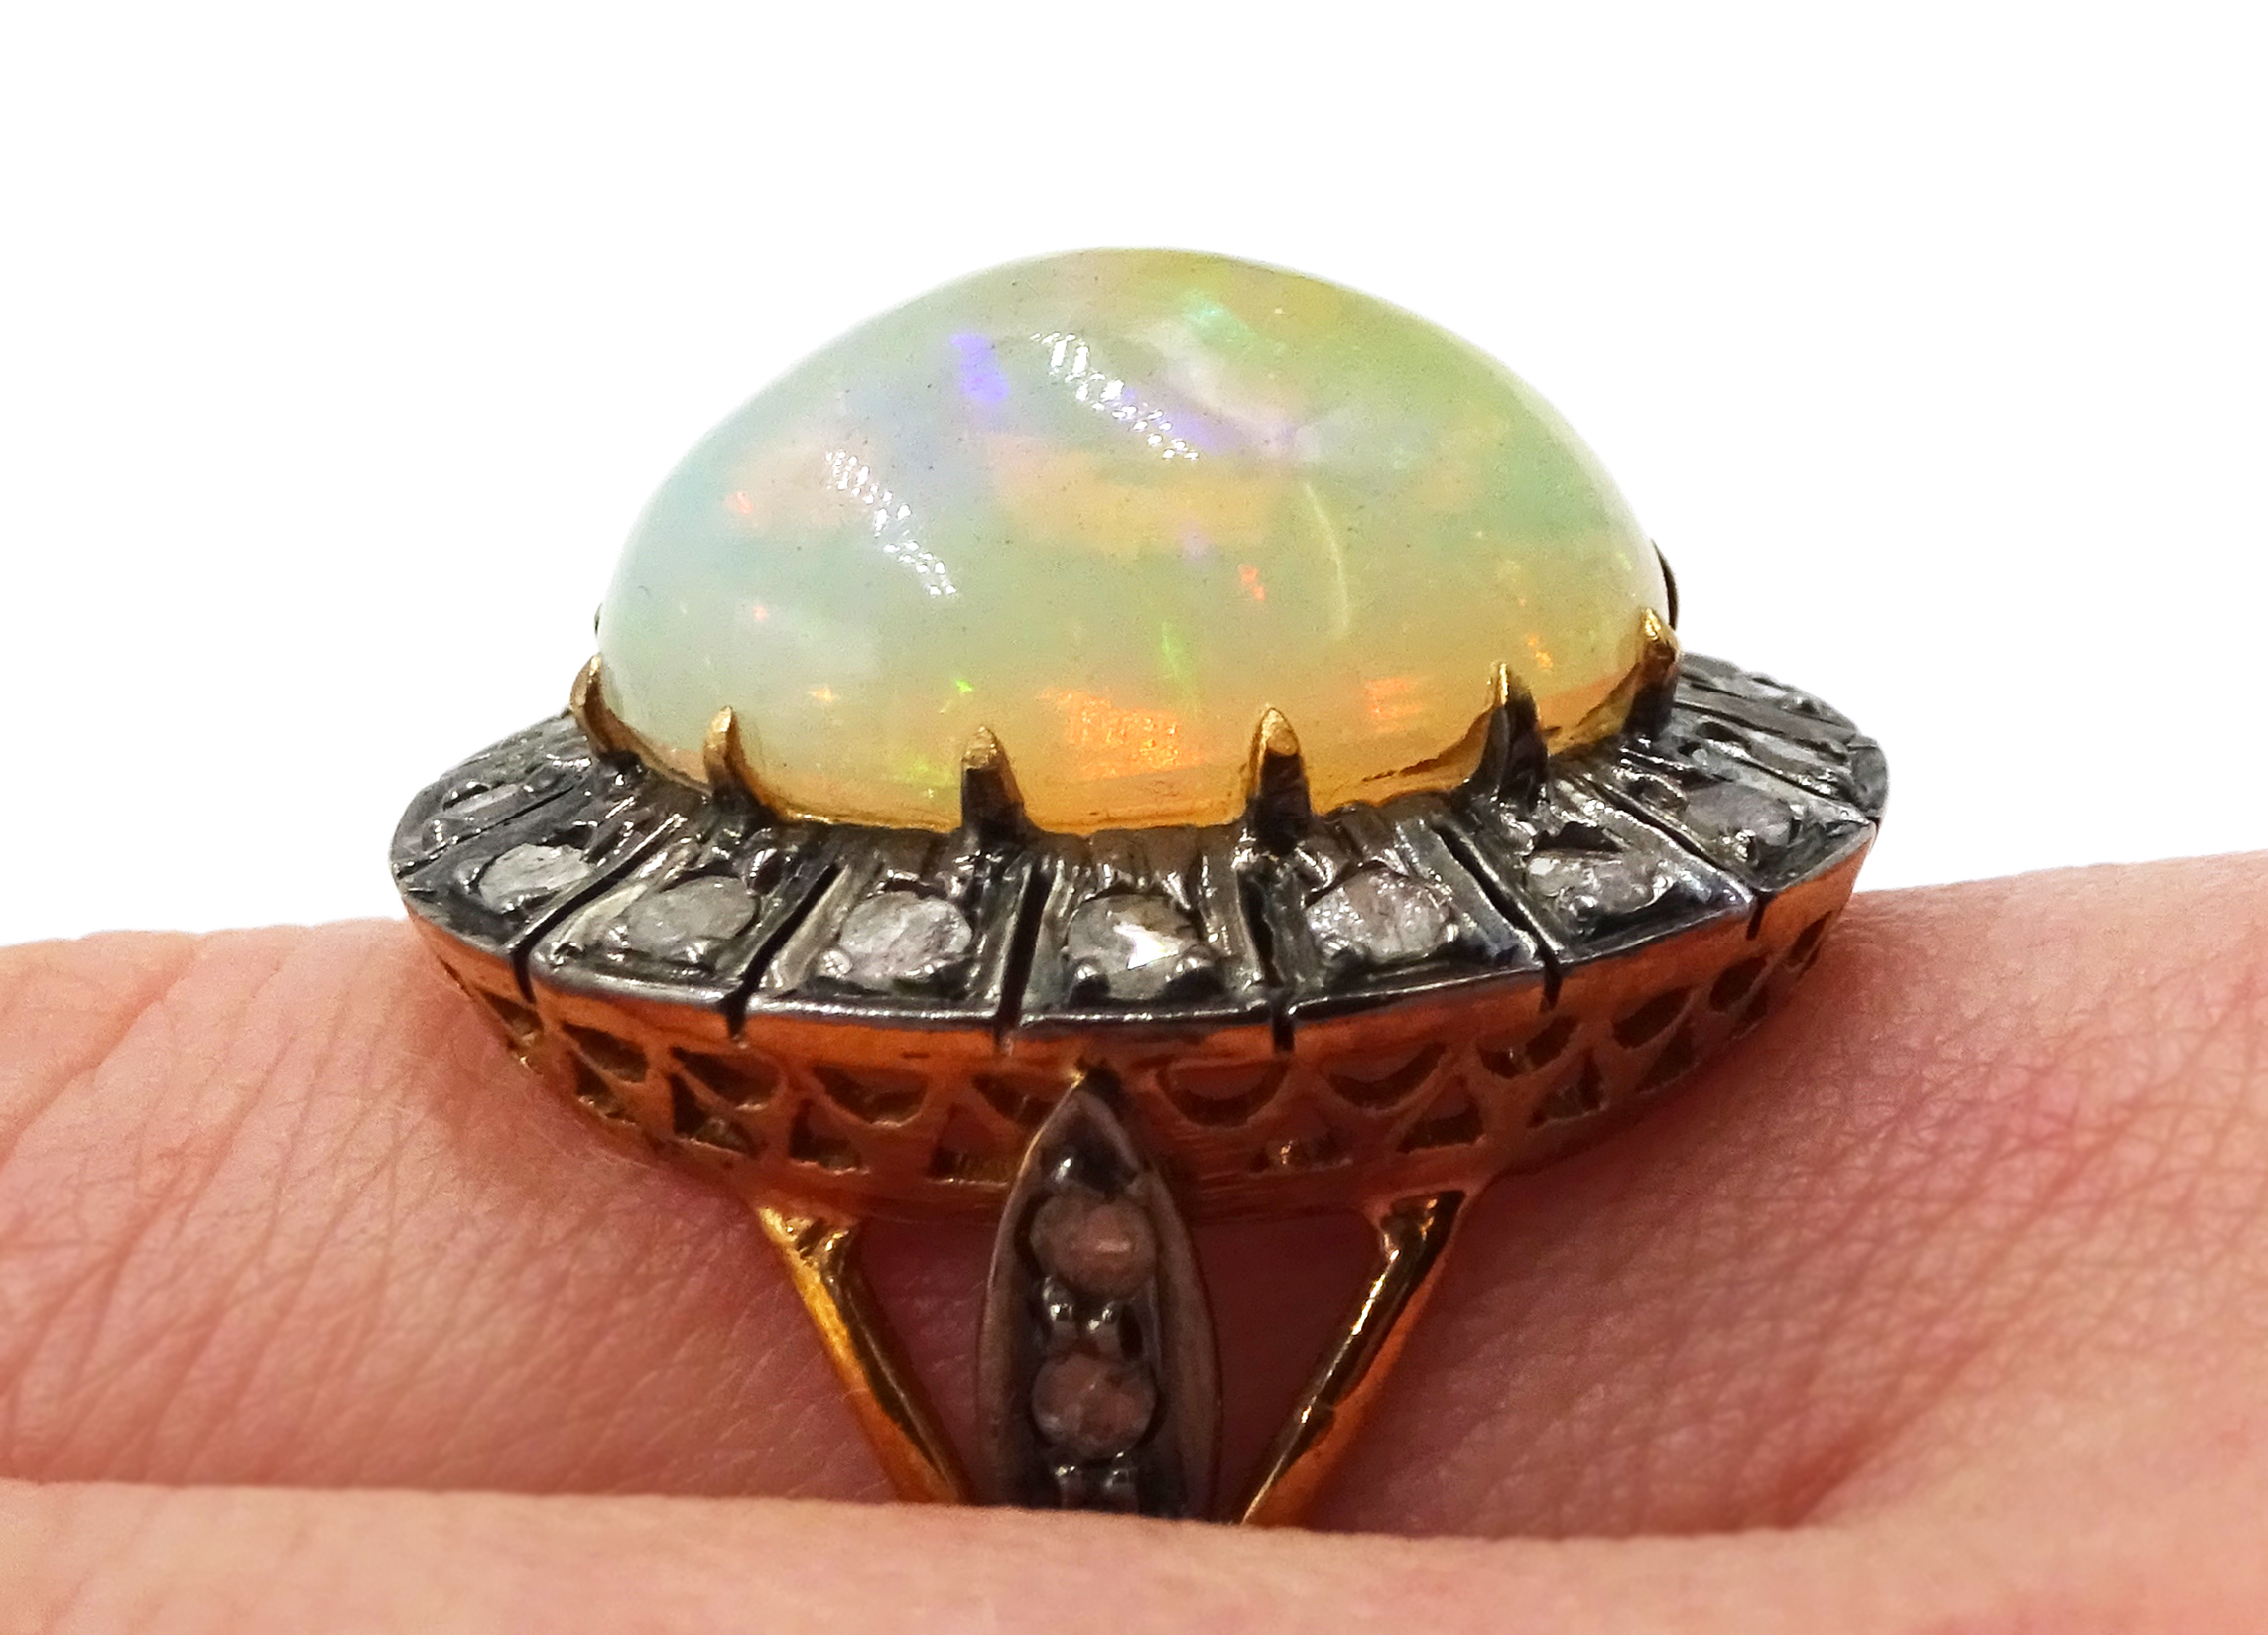 14ct gold and silver cabochon Ethiopian opal and rose cit diamond ring - Image 7 of 7